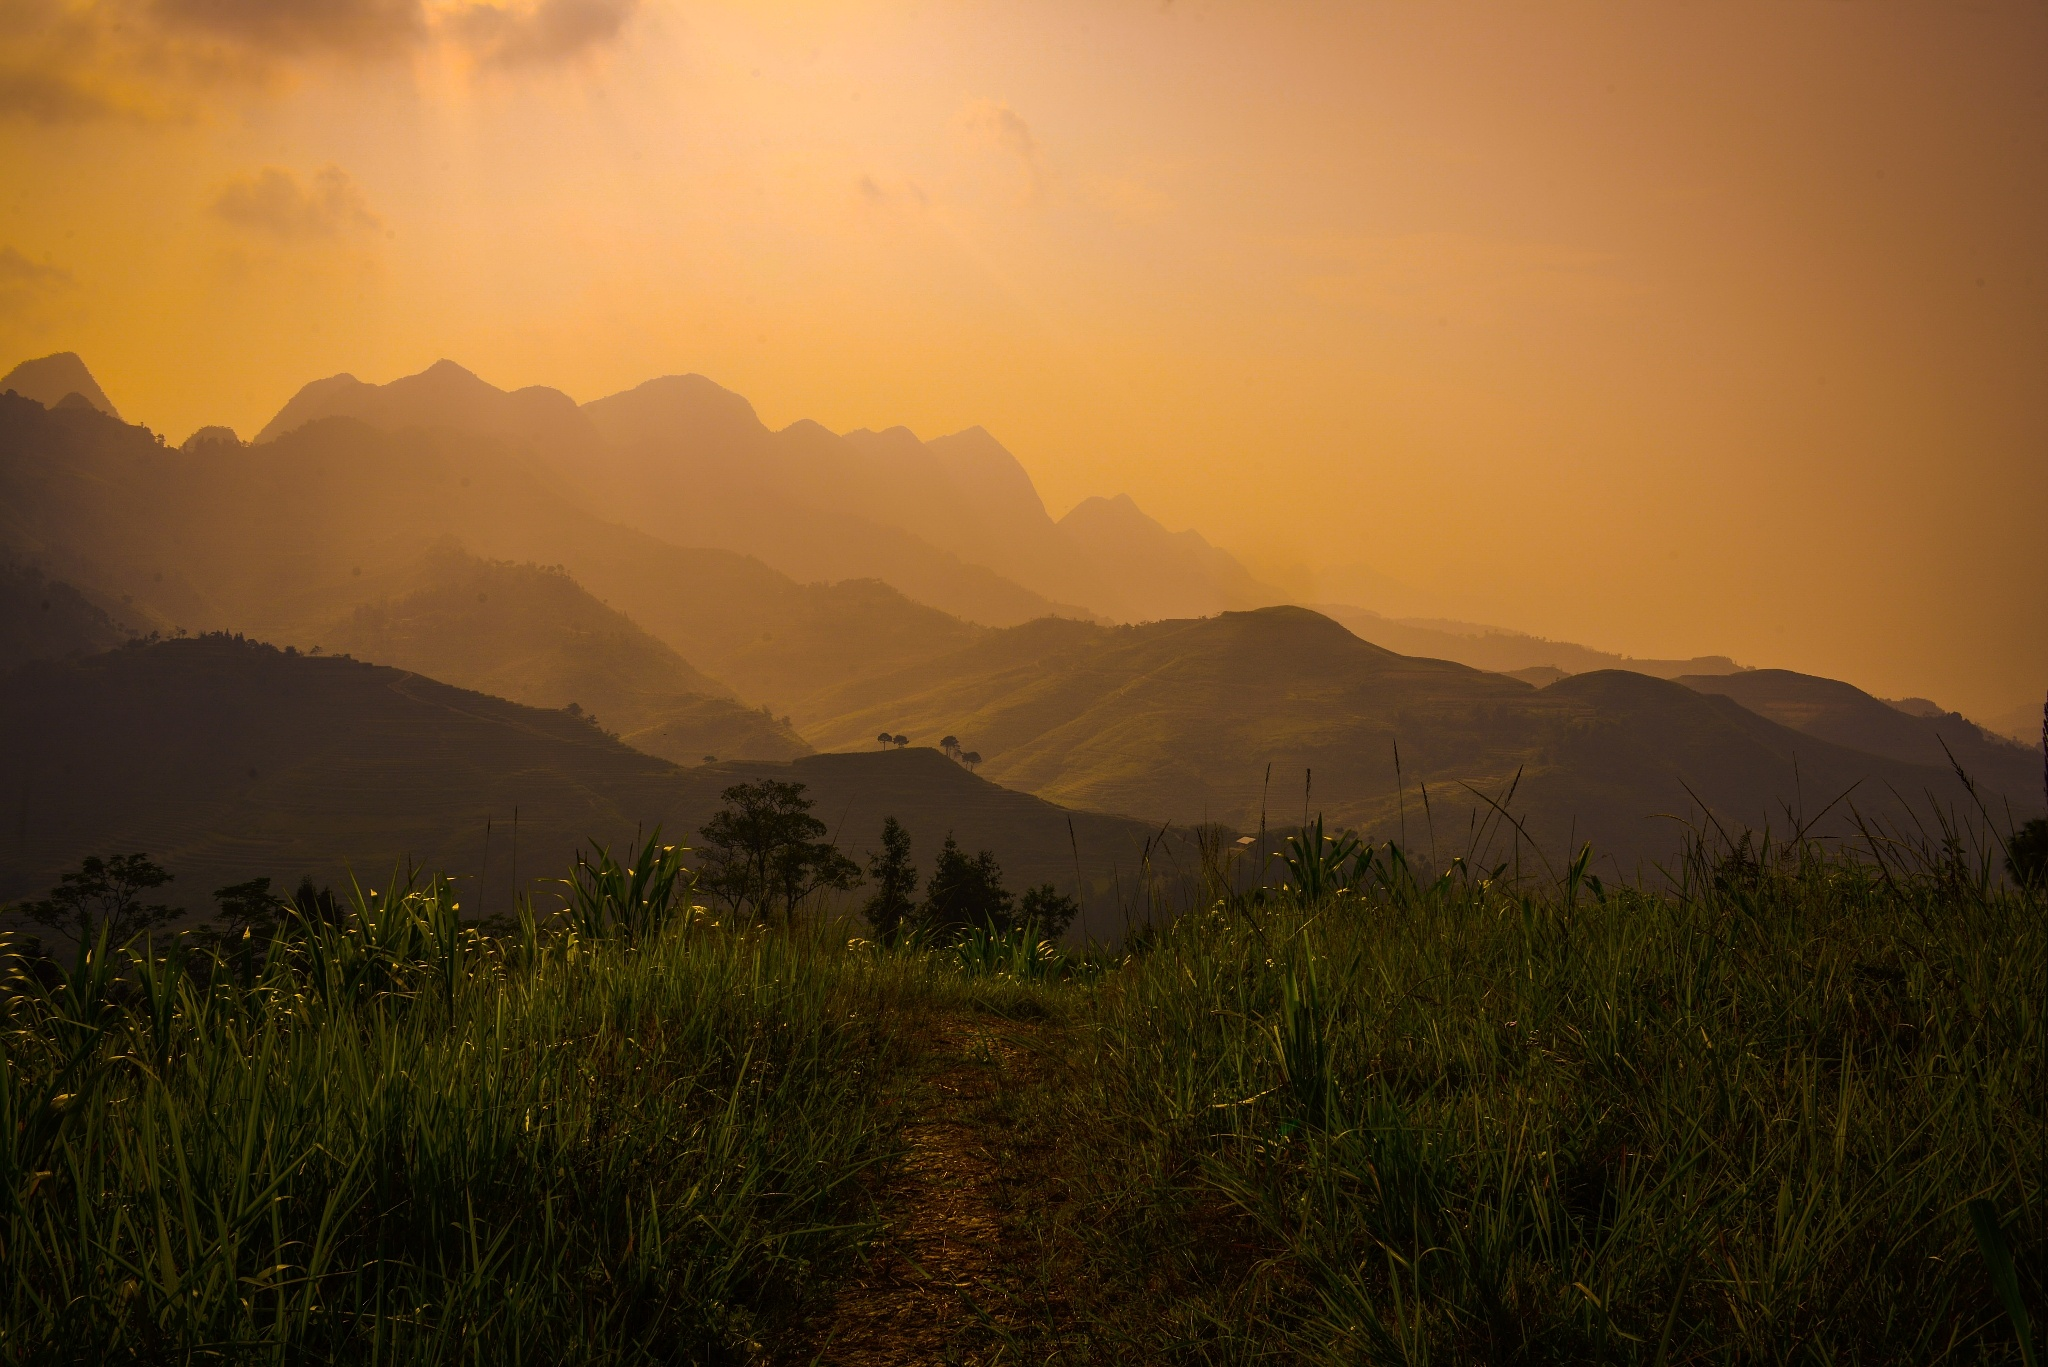 Small road with a view by Cuong NM